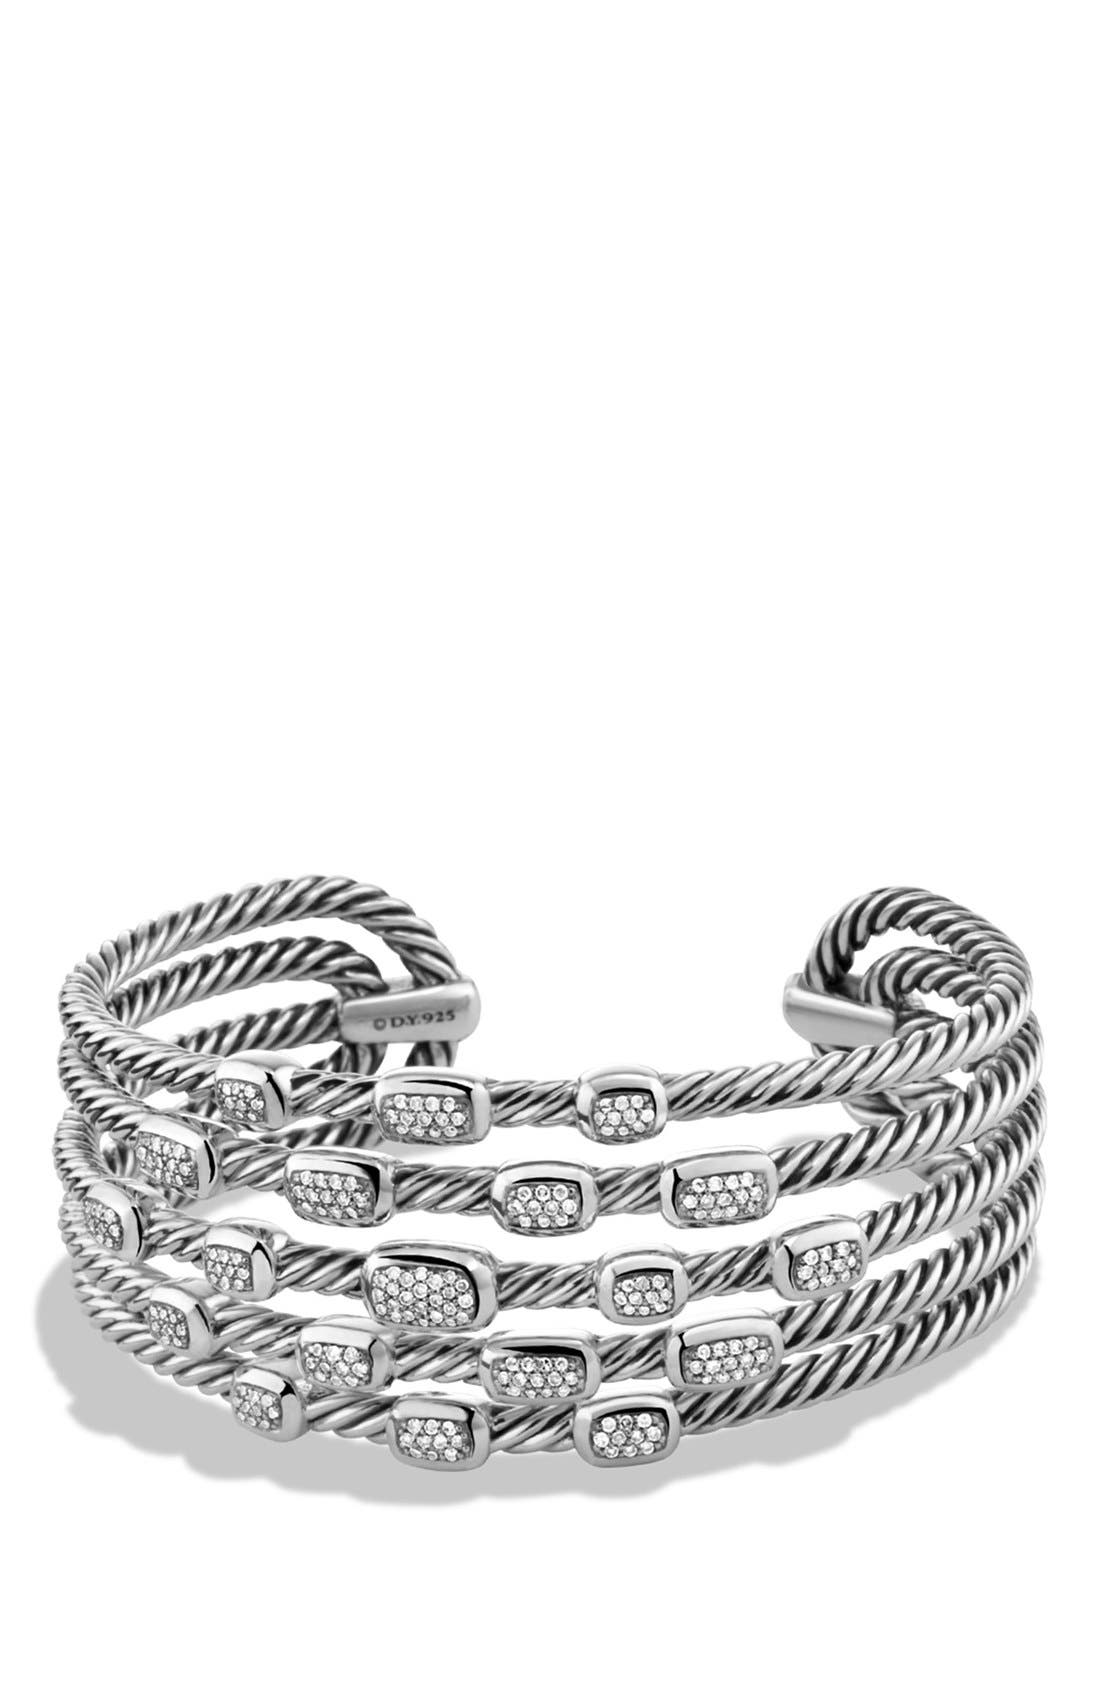 David Yurman 'Confetti' Wide Cuff Bracelet with Diamonds